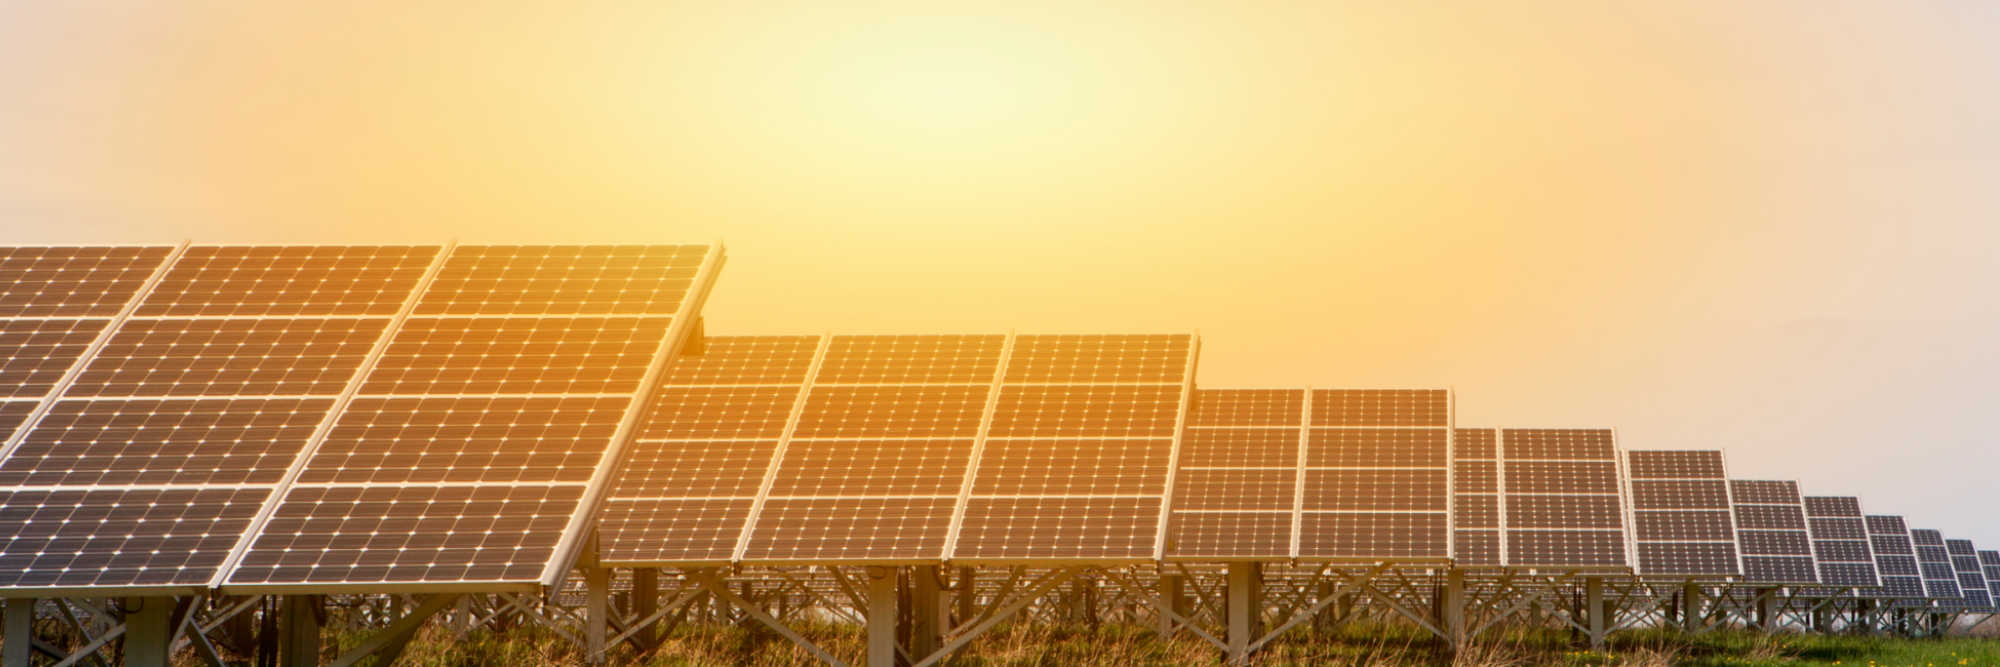 A field of solar panels with a setting sun in the background - Vision and Strategy